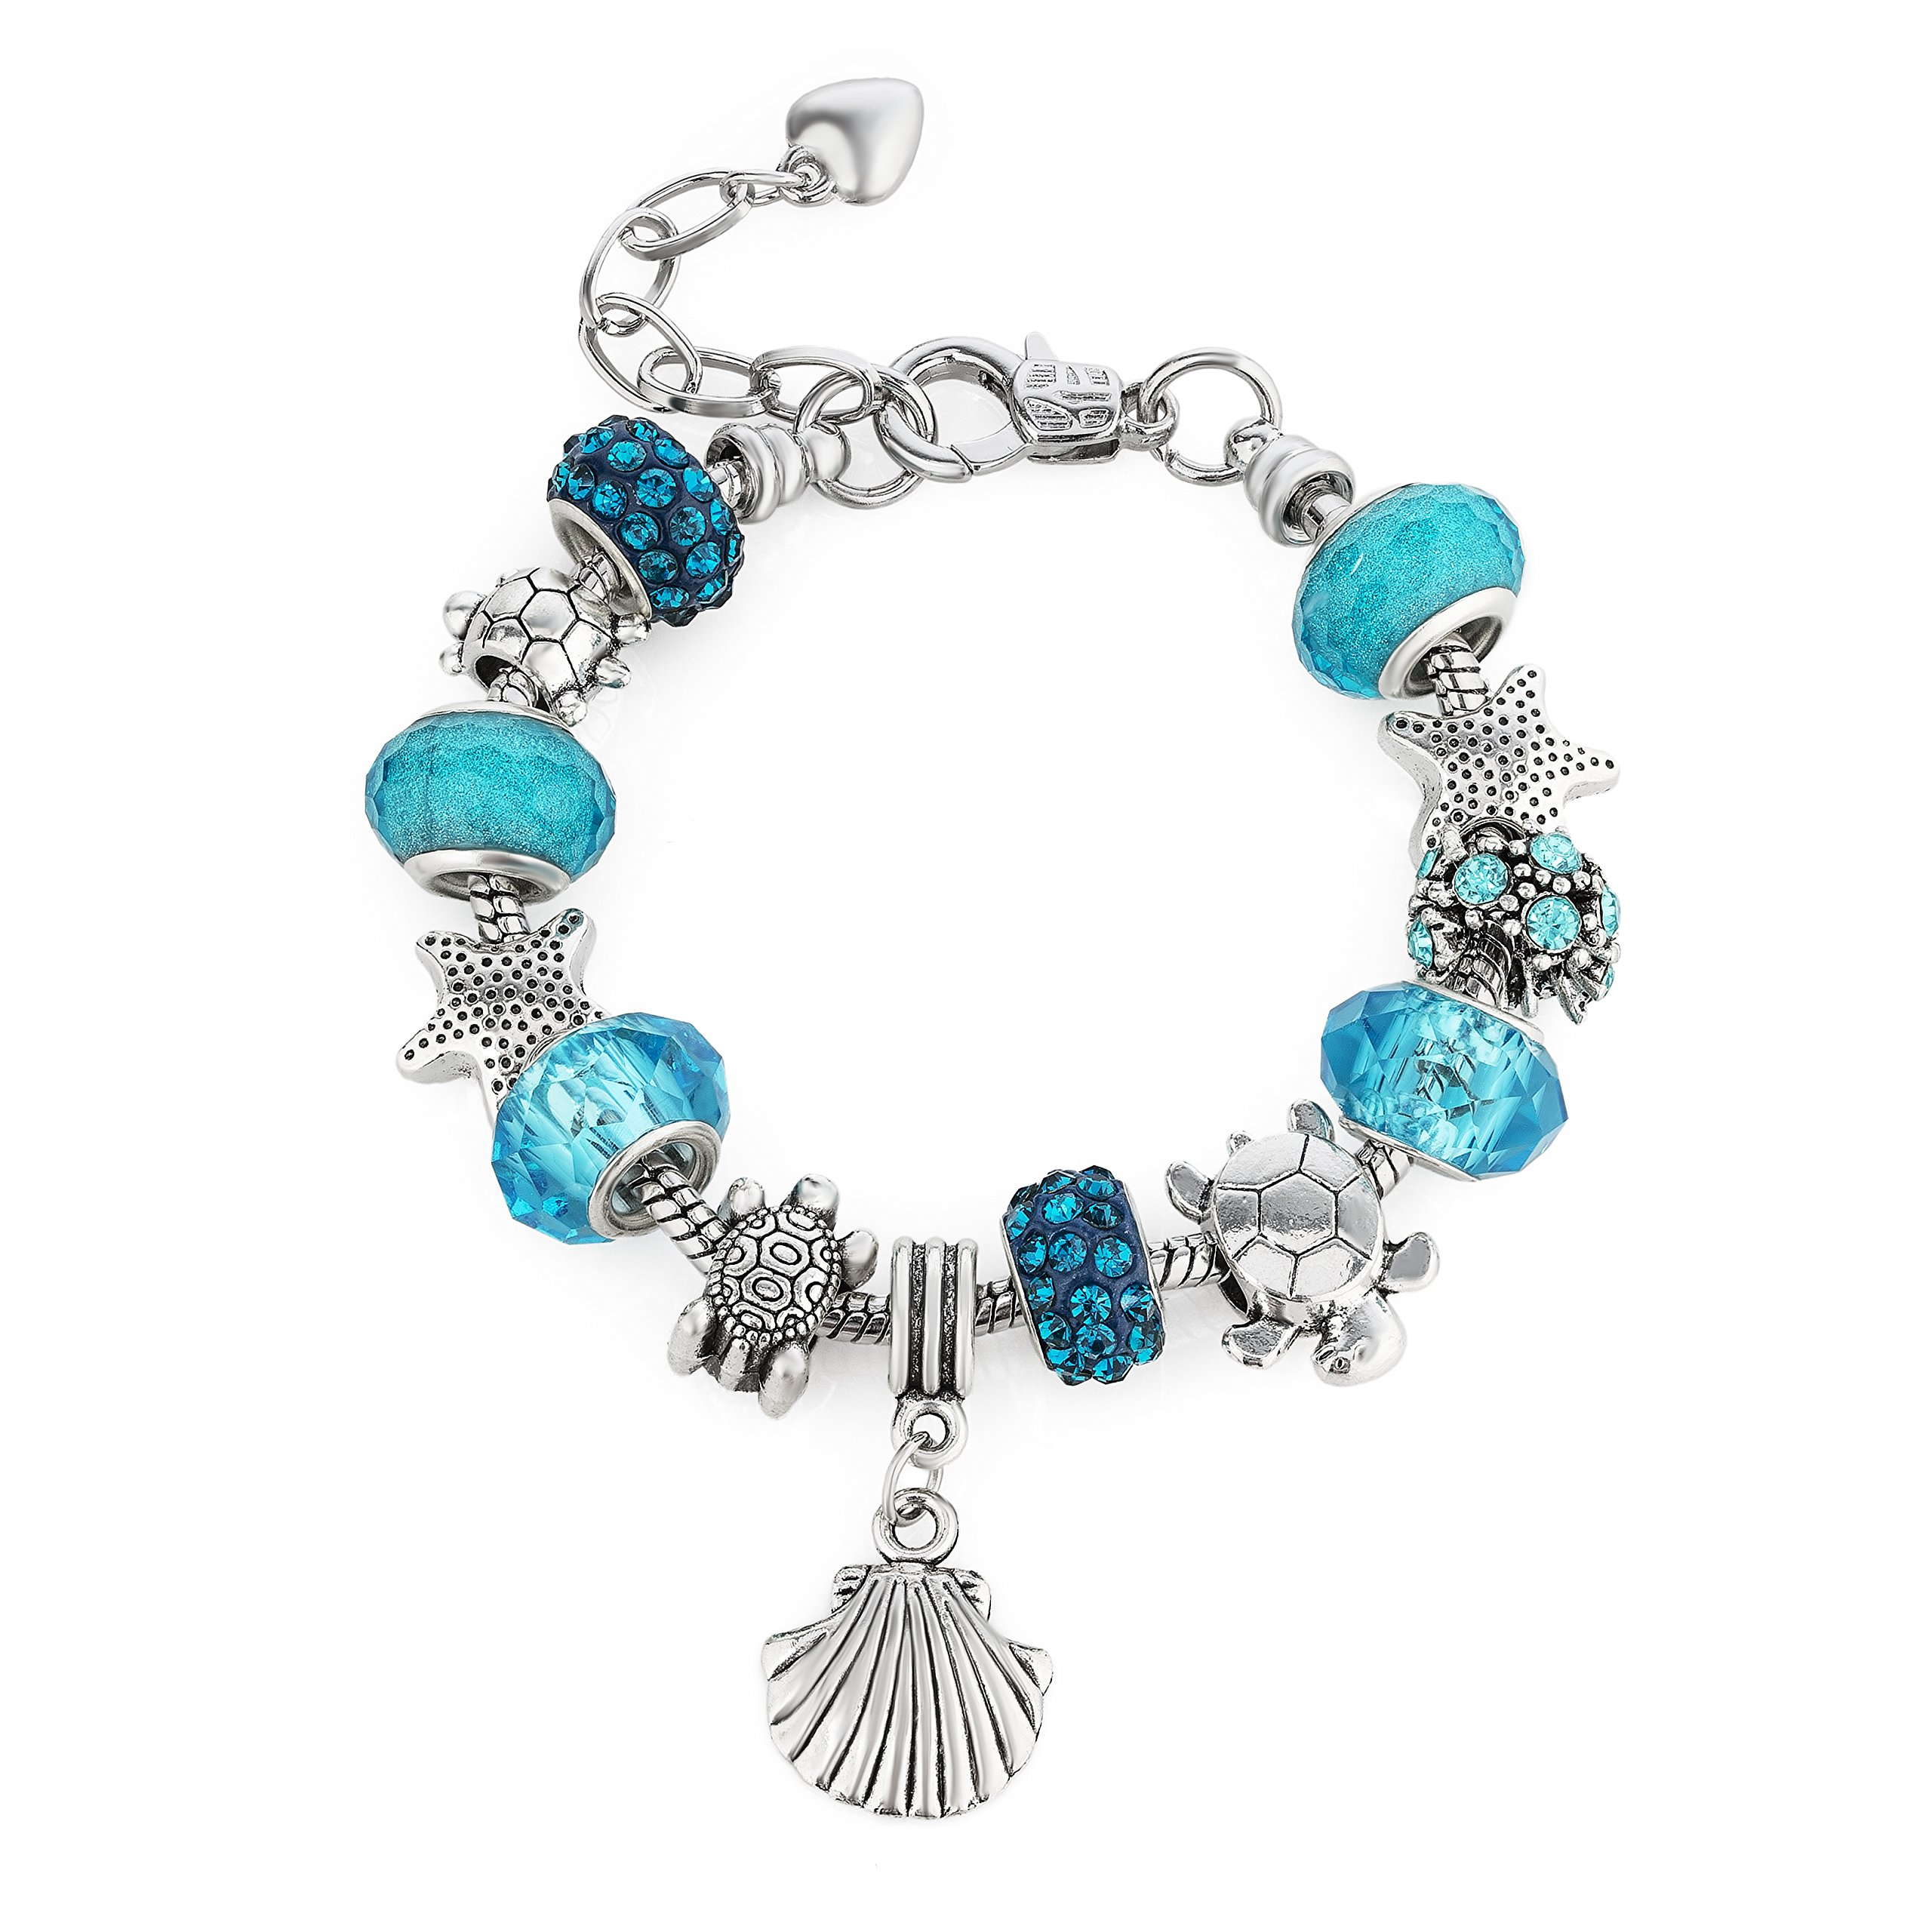 European Ocean Beach Charm Beaded Bracelet Adjustable Size 6-8.5 Inch for Women and Teen Girls Seashell Turtle Starfish Aquamarine Murano Glass Beads Prime Quality Gift 925 Silver Plated